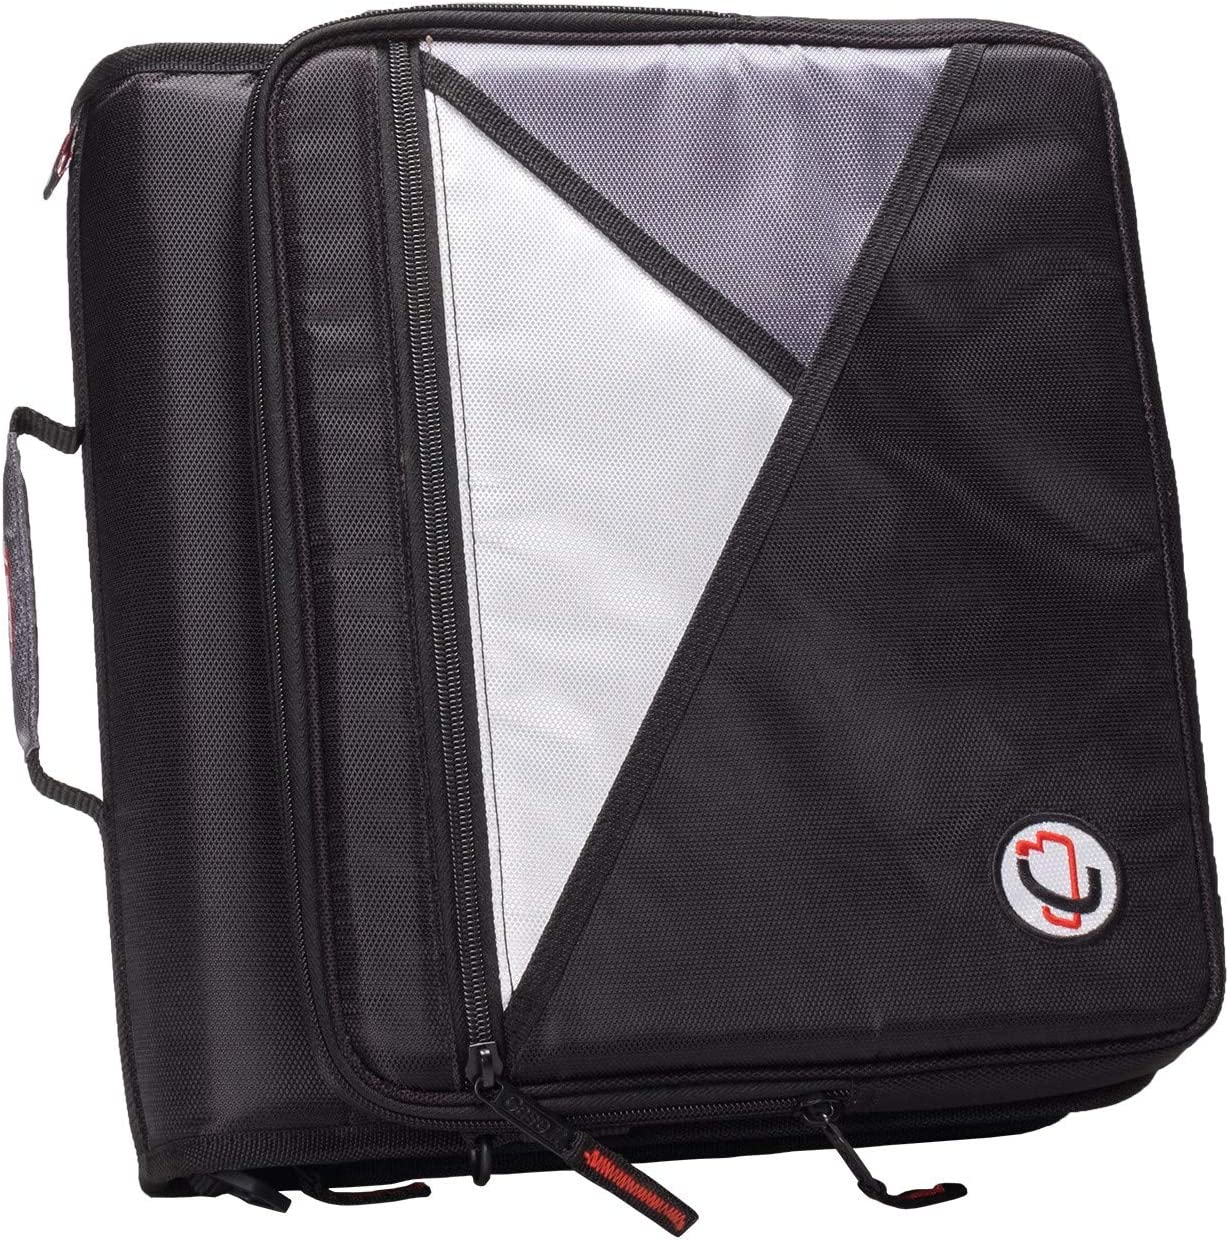 Case-It 1.5-Inch 3-Ring Zipper Binder with Removable Laptop Sleeve, Black, LT-207-BK